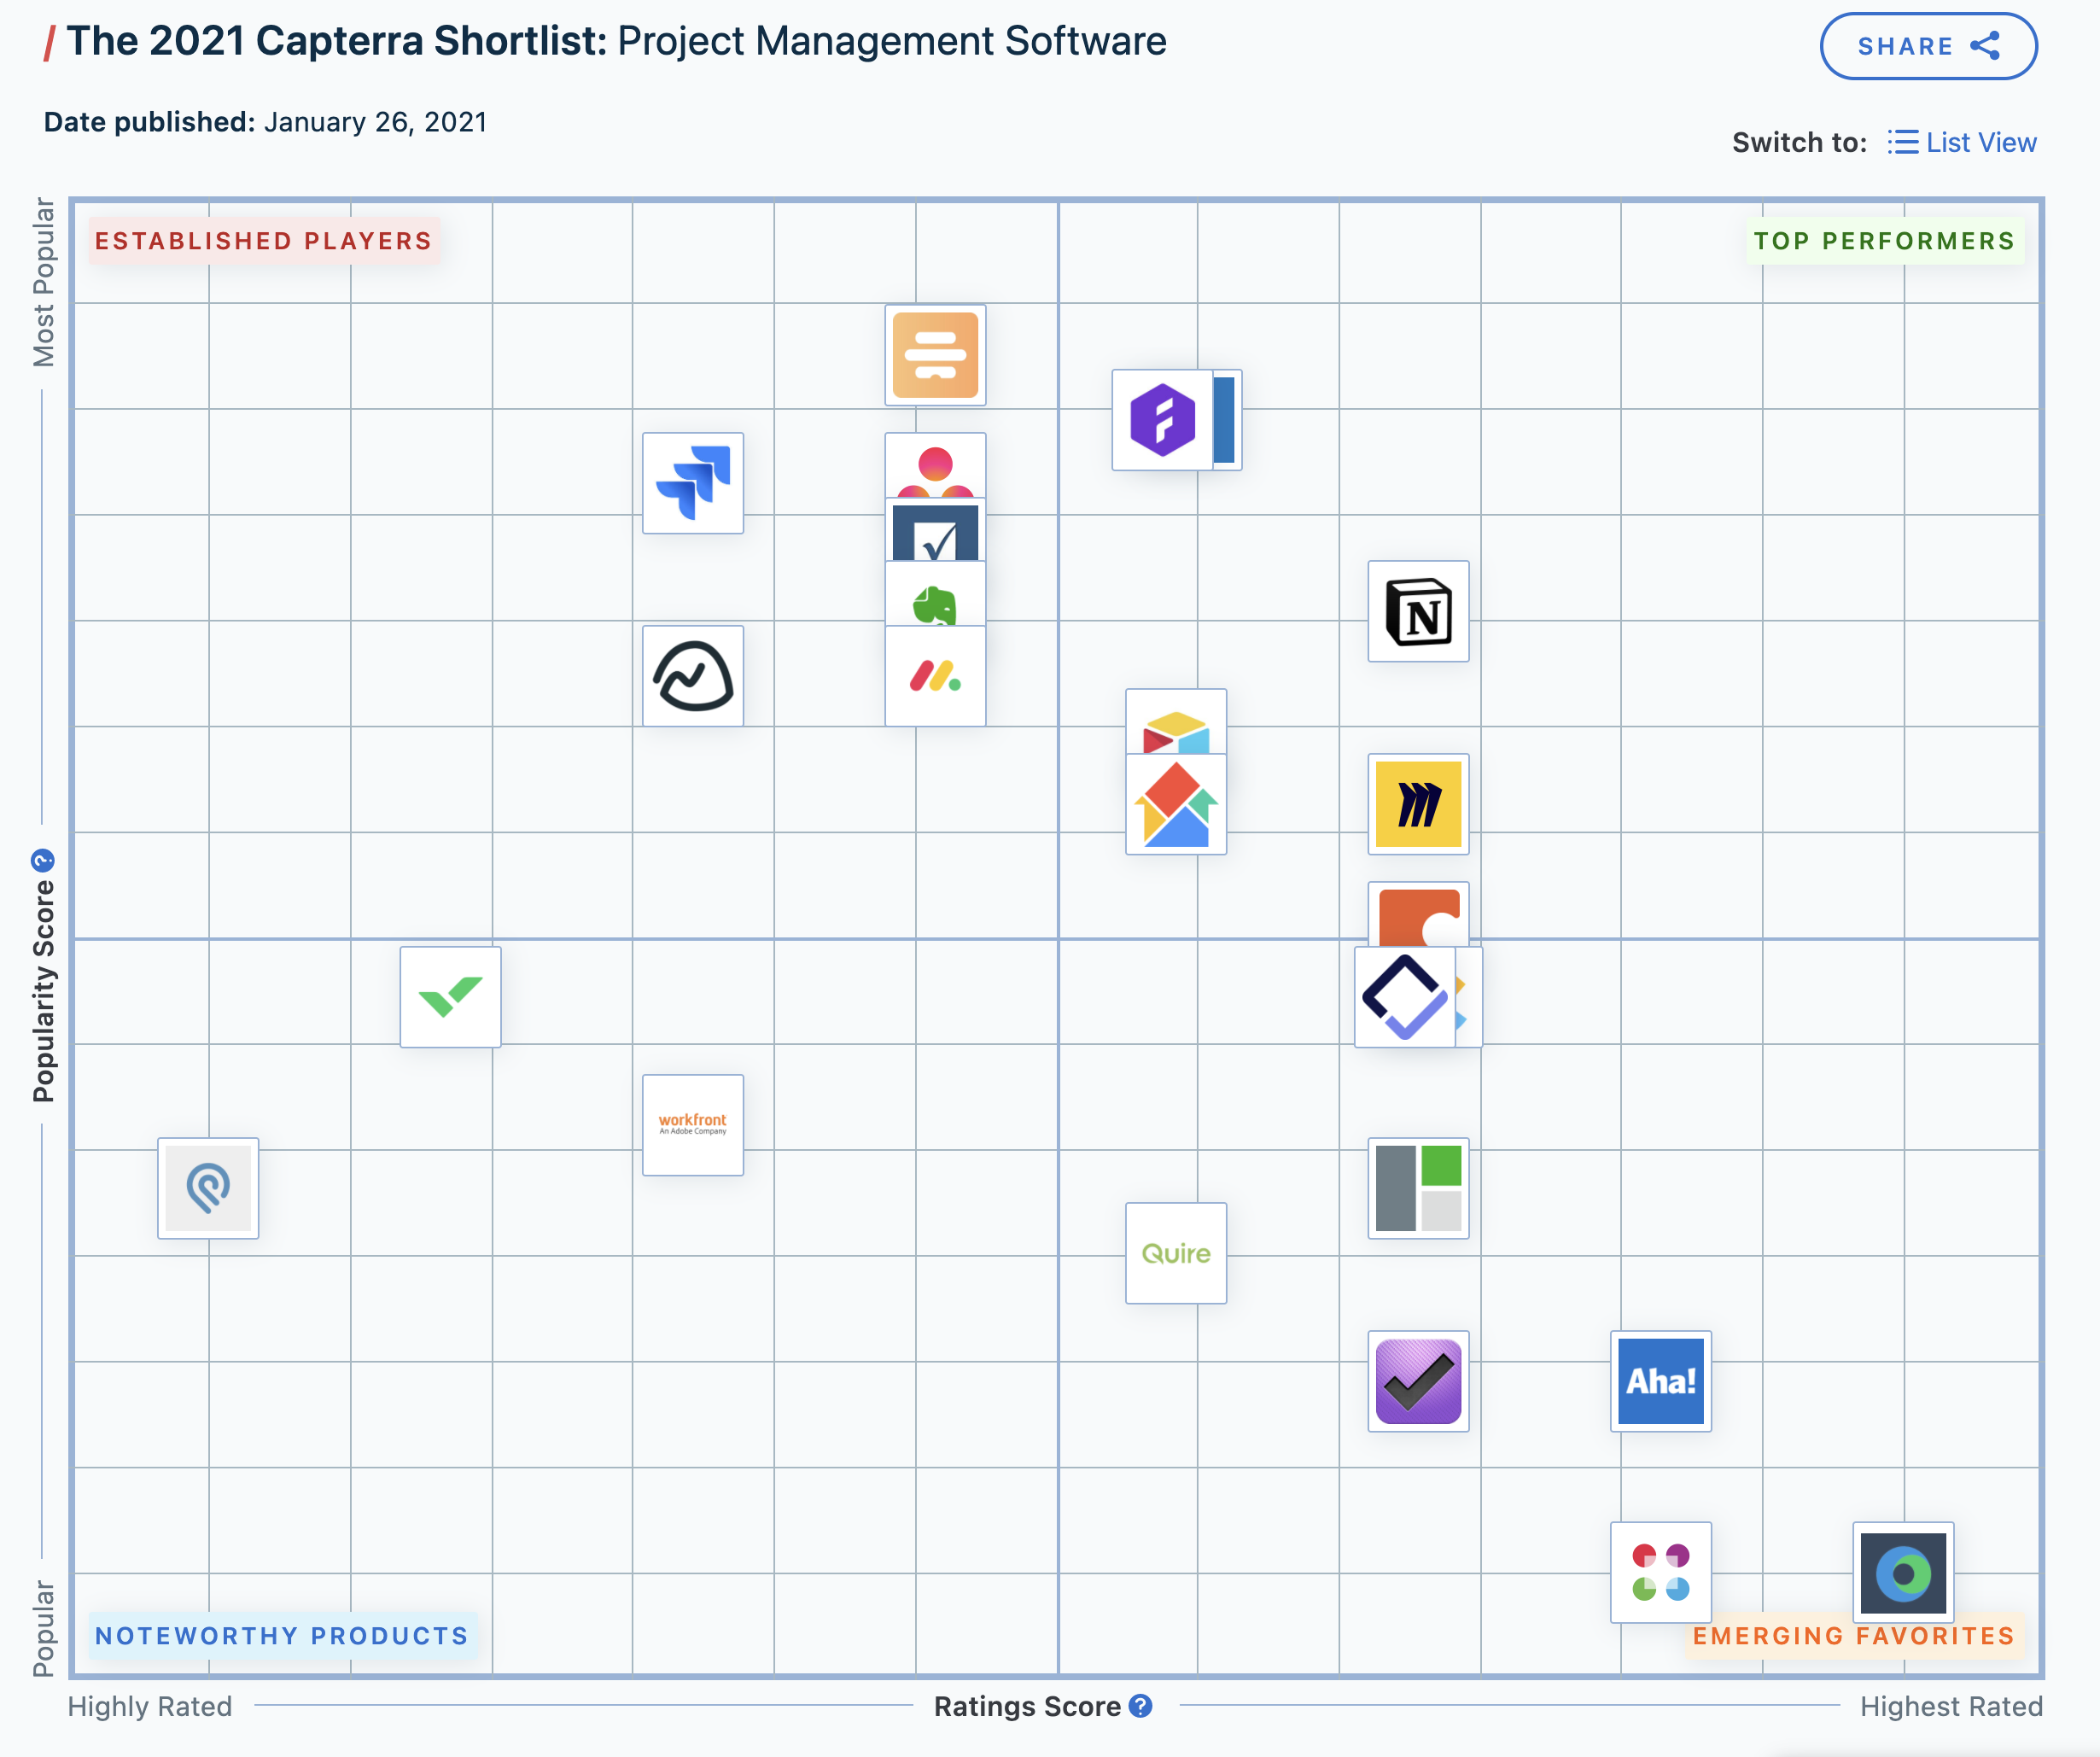 The 2021 Capterra Shortlist: Project Management Software